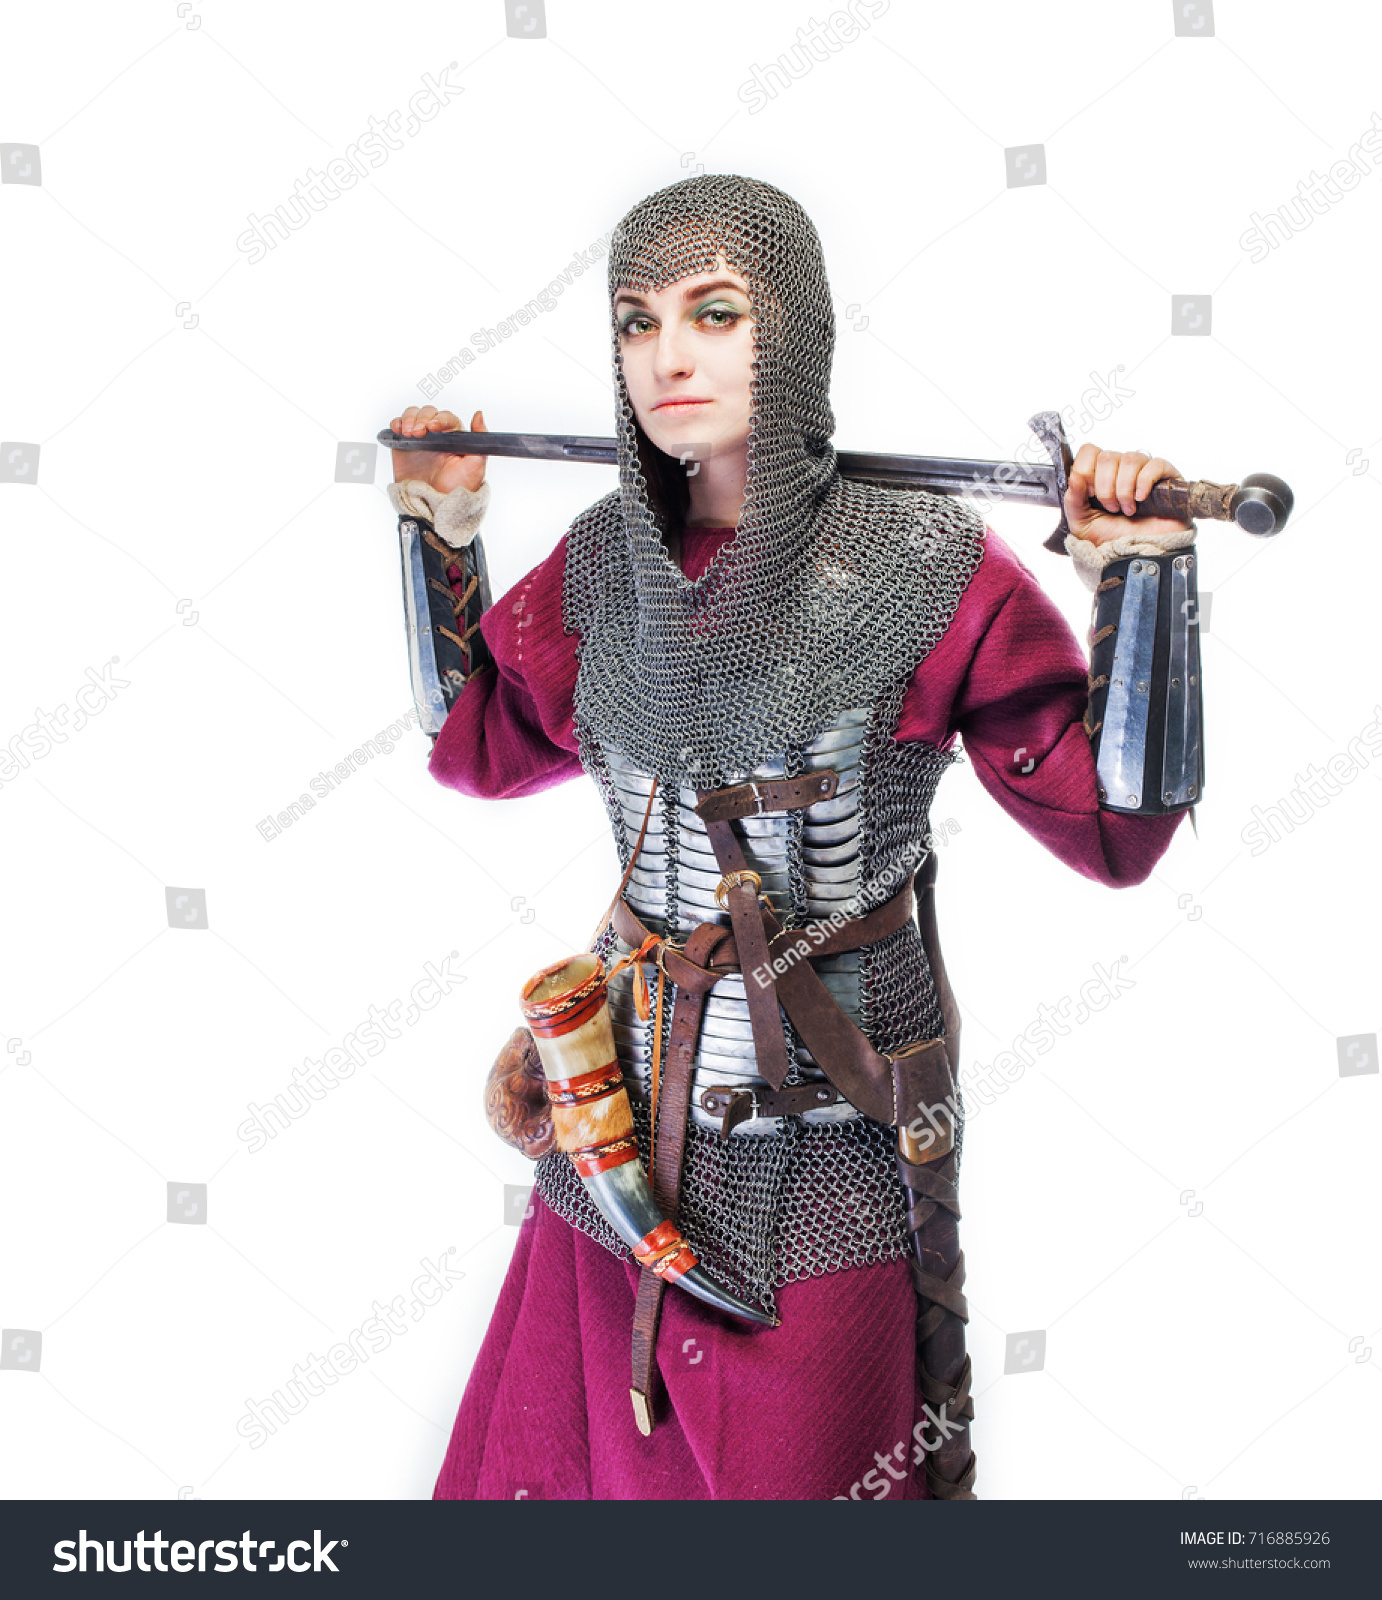 Girl warrior chain mail sword hand stock photo 716885926 girl warrior in chain mail and with sword in hand woman viking in historical battle sciox Choice Image